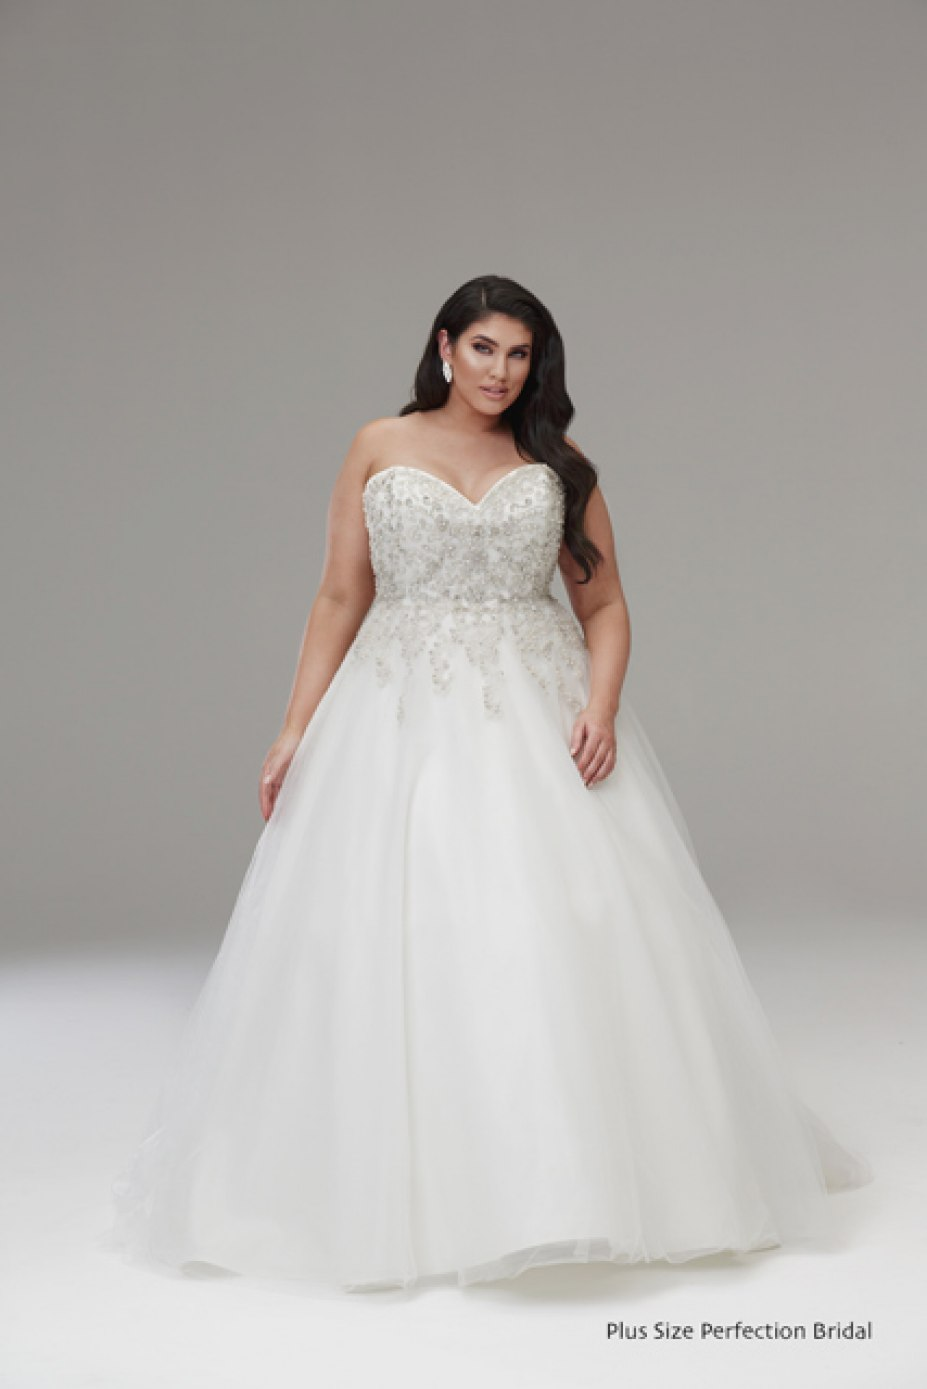 Plus Size Princess Wedding Dresses Awesome Wedding Dresses Plus Size  Specialists Melbourne Size16 to 34 In